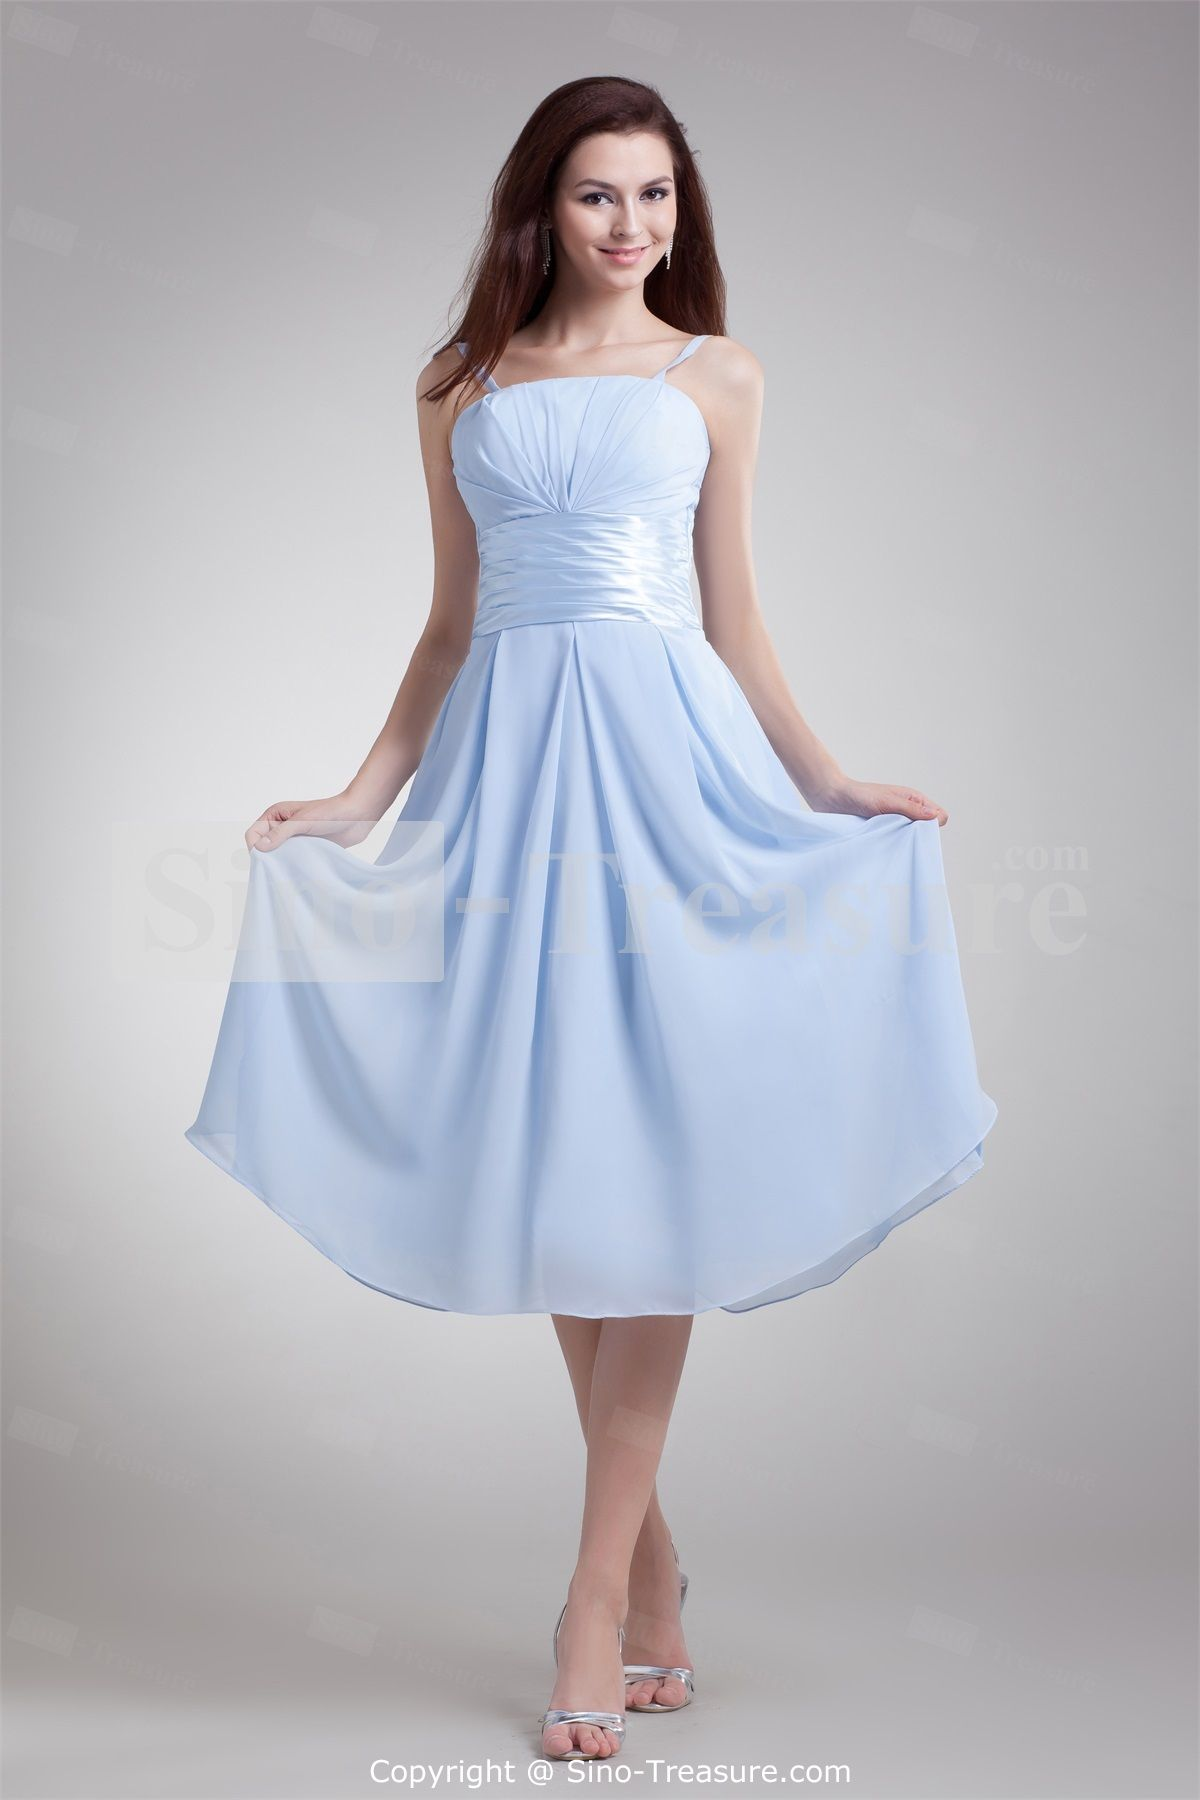 Light sky blue bridesmaid dresses ocodea bridesmaid dresses quinceanera dresseshomecoming dressesbridesmaid dressesprom dresses a line spaghetti straps sleeveless empire zipper tea length chiffon ruching ombrellifo Images